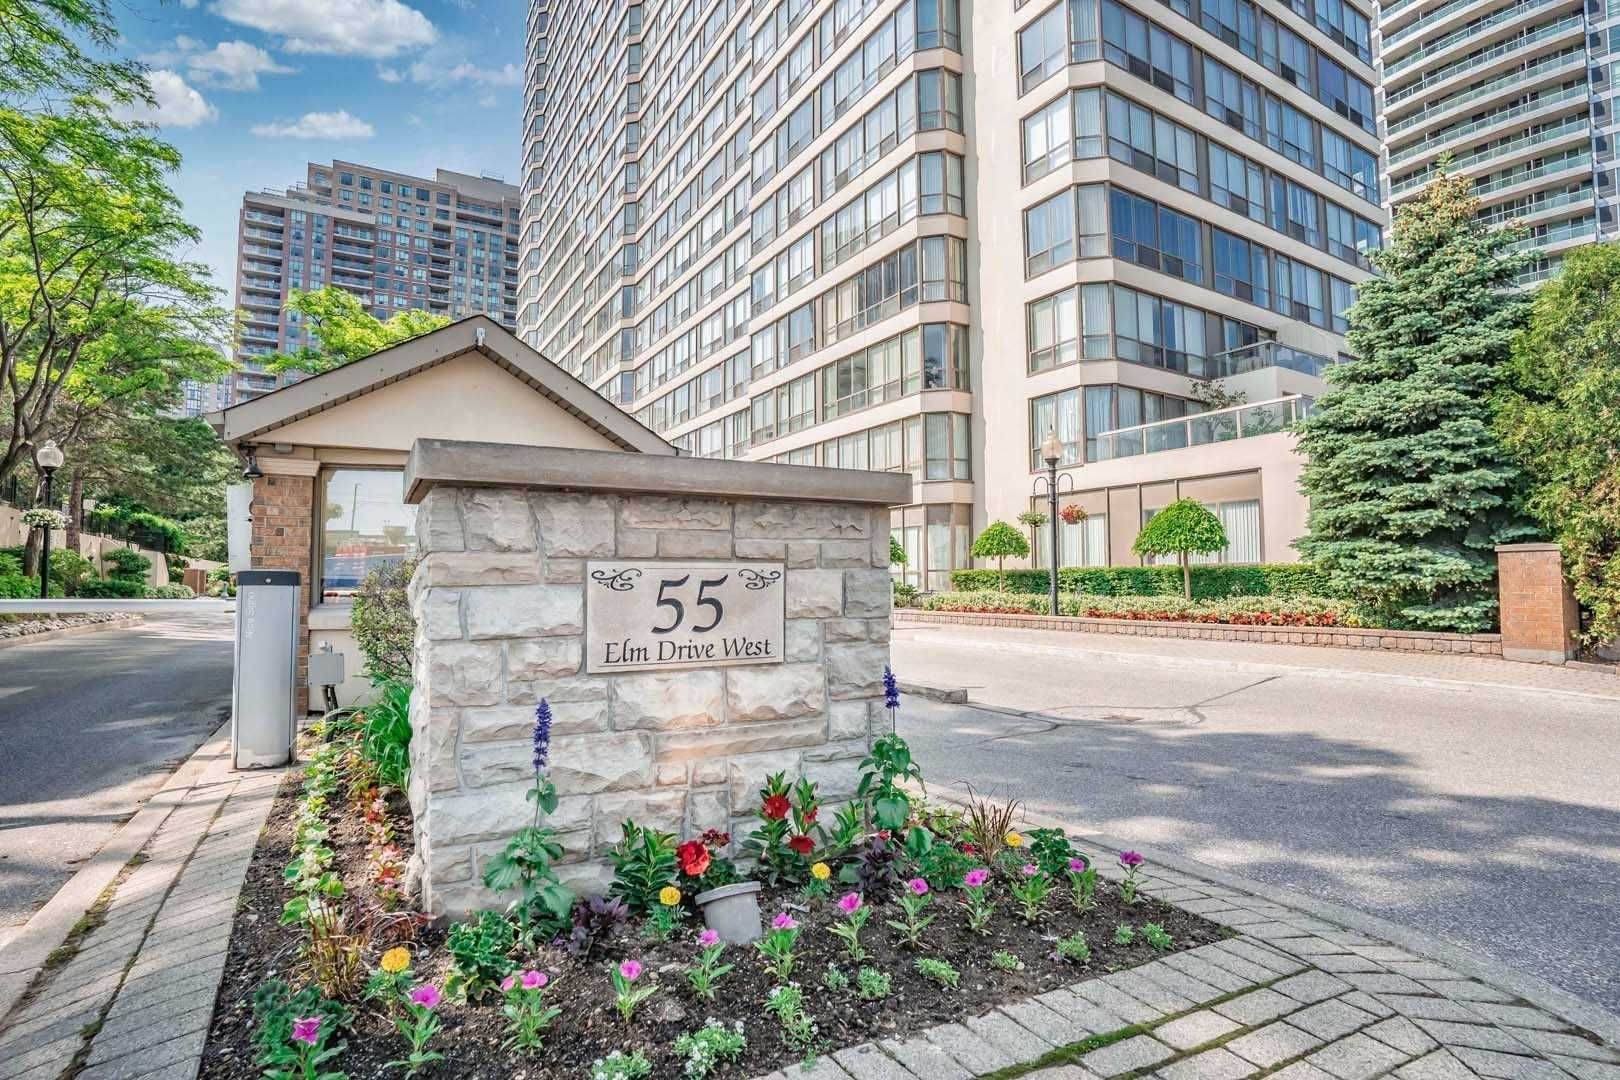 55 Elm Dr W, unit Ph9 for sale in Toronto - image #1